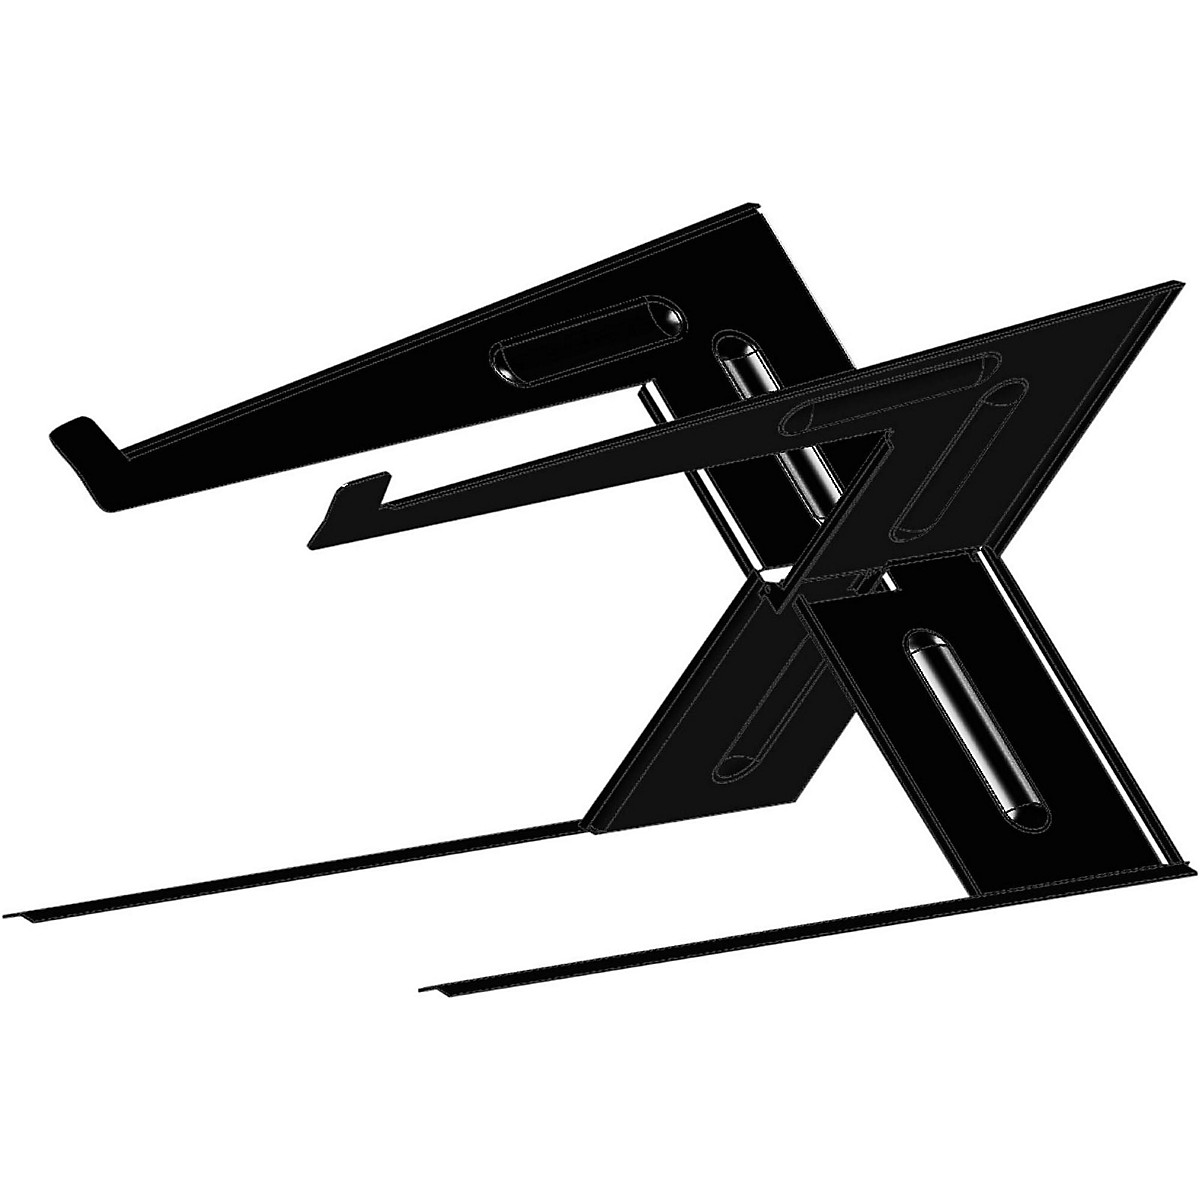 Sefour XF Stand for Laptop, Tablet and DDJ Controller